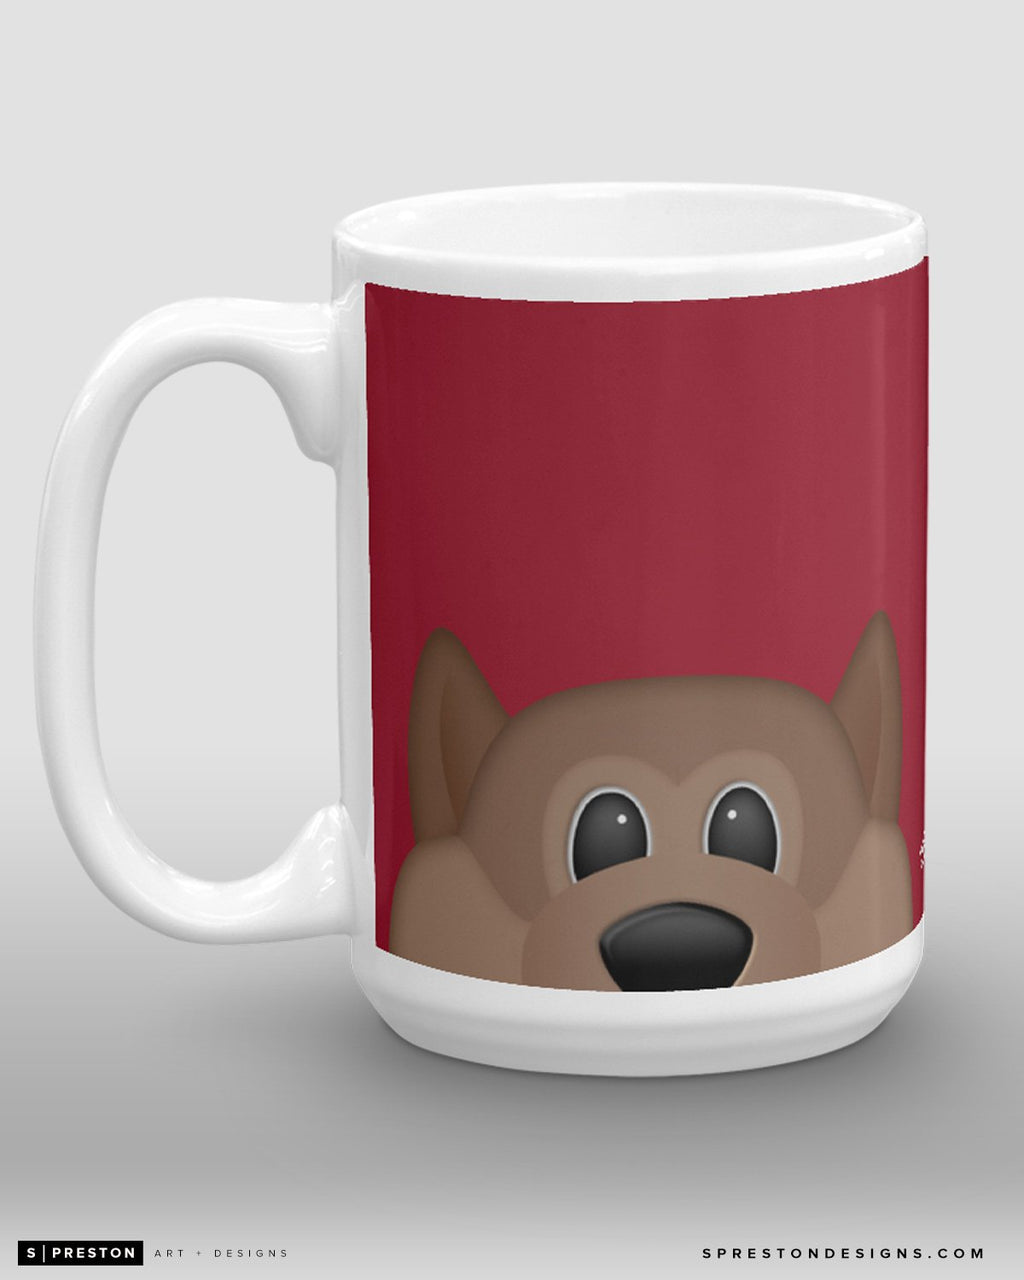 Minimalist Howler Coffee Mug - NHL Licensed - Arizona Coyotes Mascot